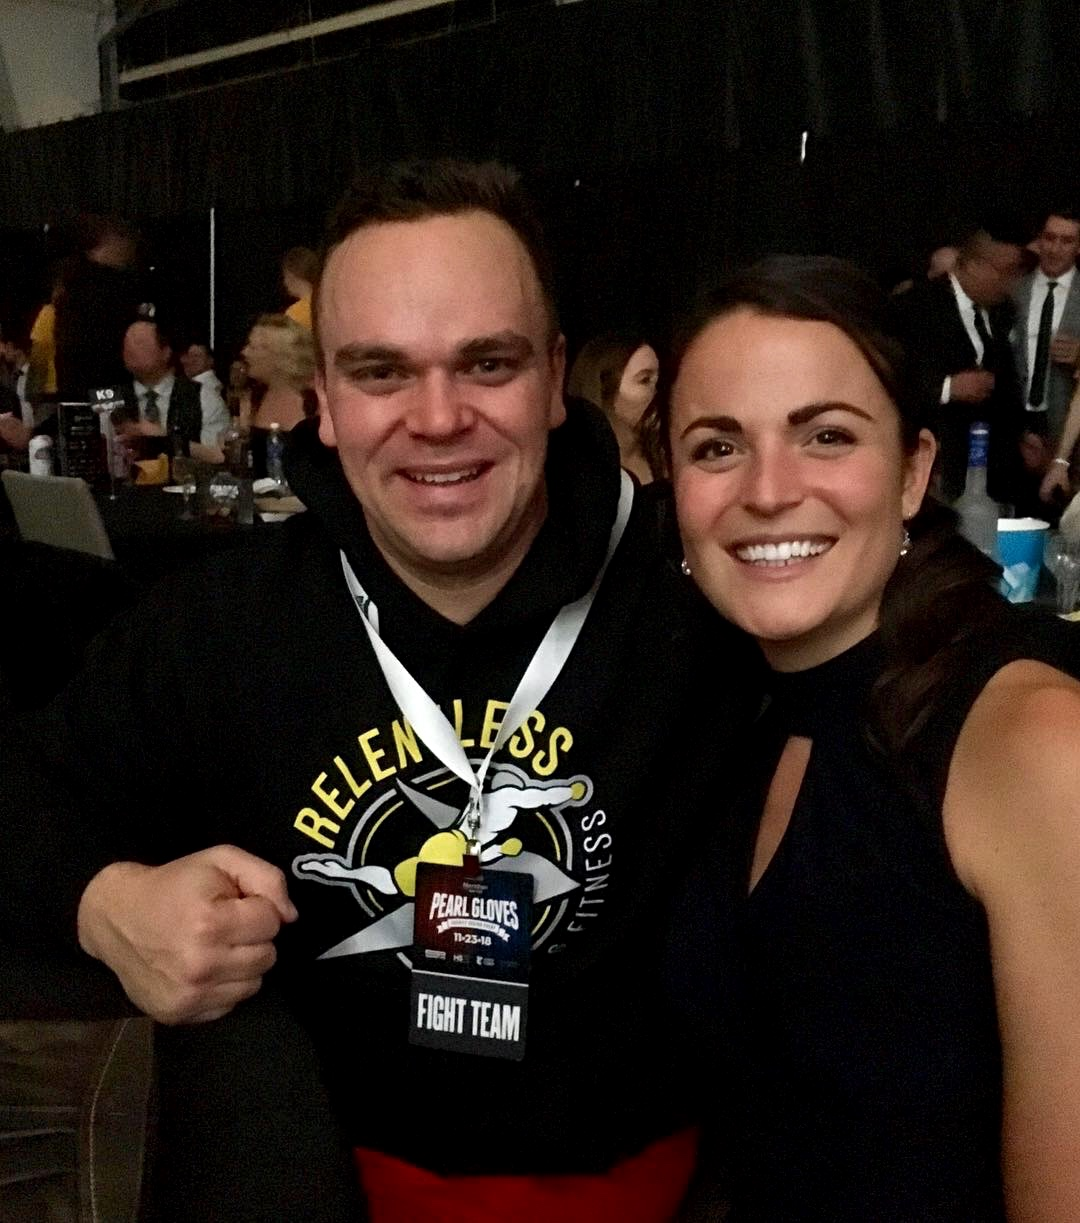 """Pearl Gloves Charity Boxing Event 2018 - Margaret had the pleasure of working with Tim 'The Titan"""" Warden in preparation for his fight at this year's Pearl Gloves charity boxing event in aid of MS.Tim achieved significant weight loss and gained fantastic skills, adopting a more balanced diet but one that also supported his training and epic performance come fight night."""